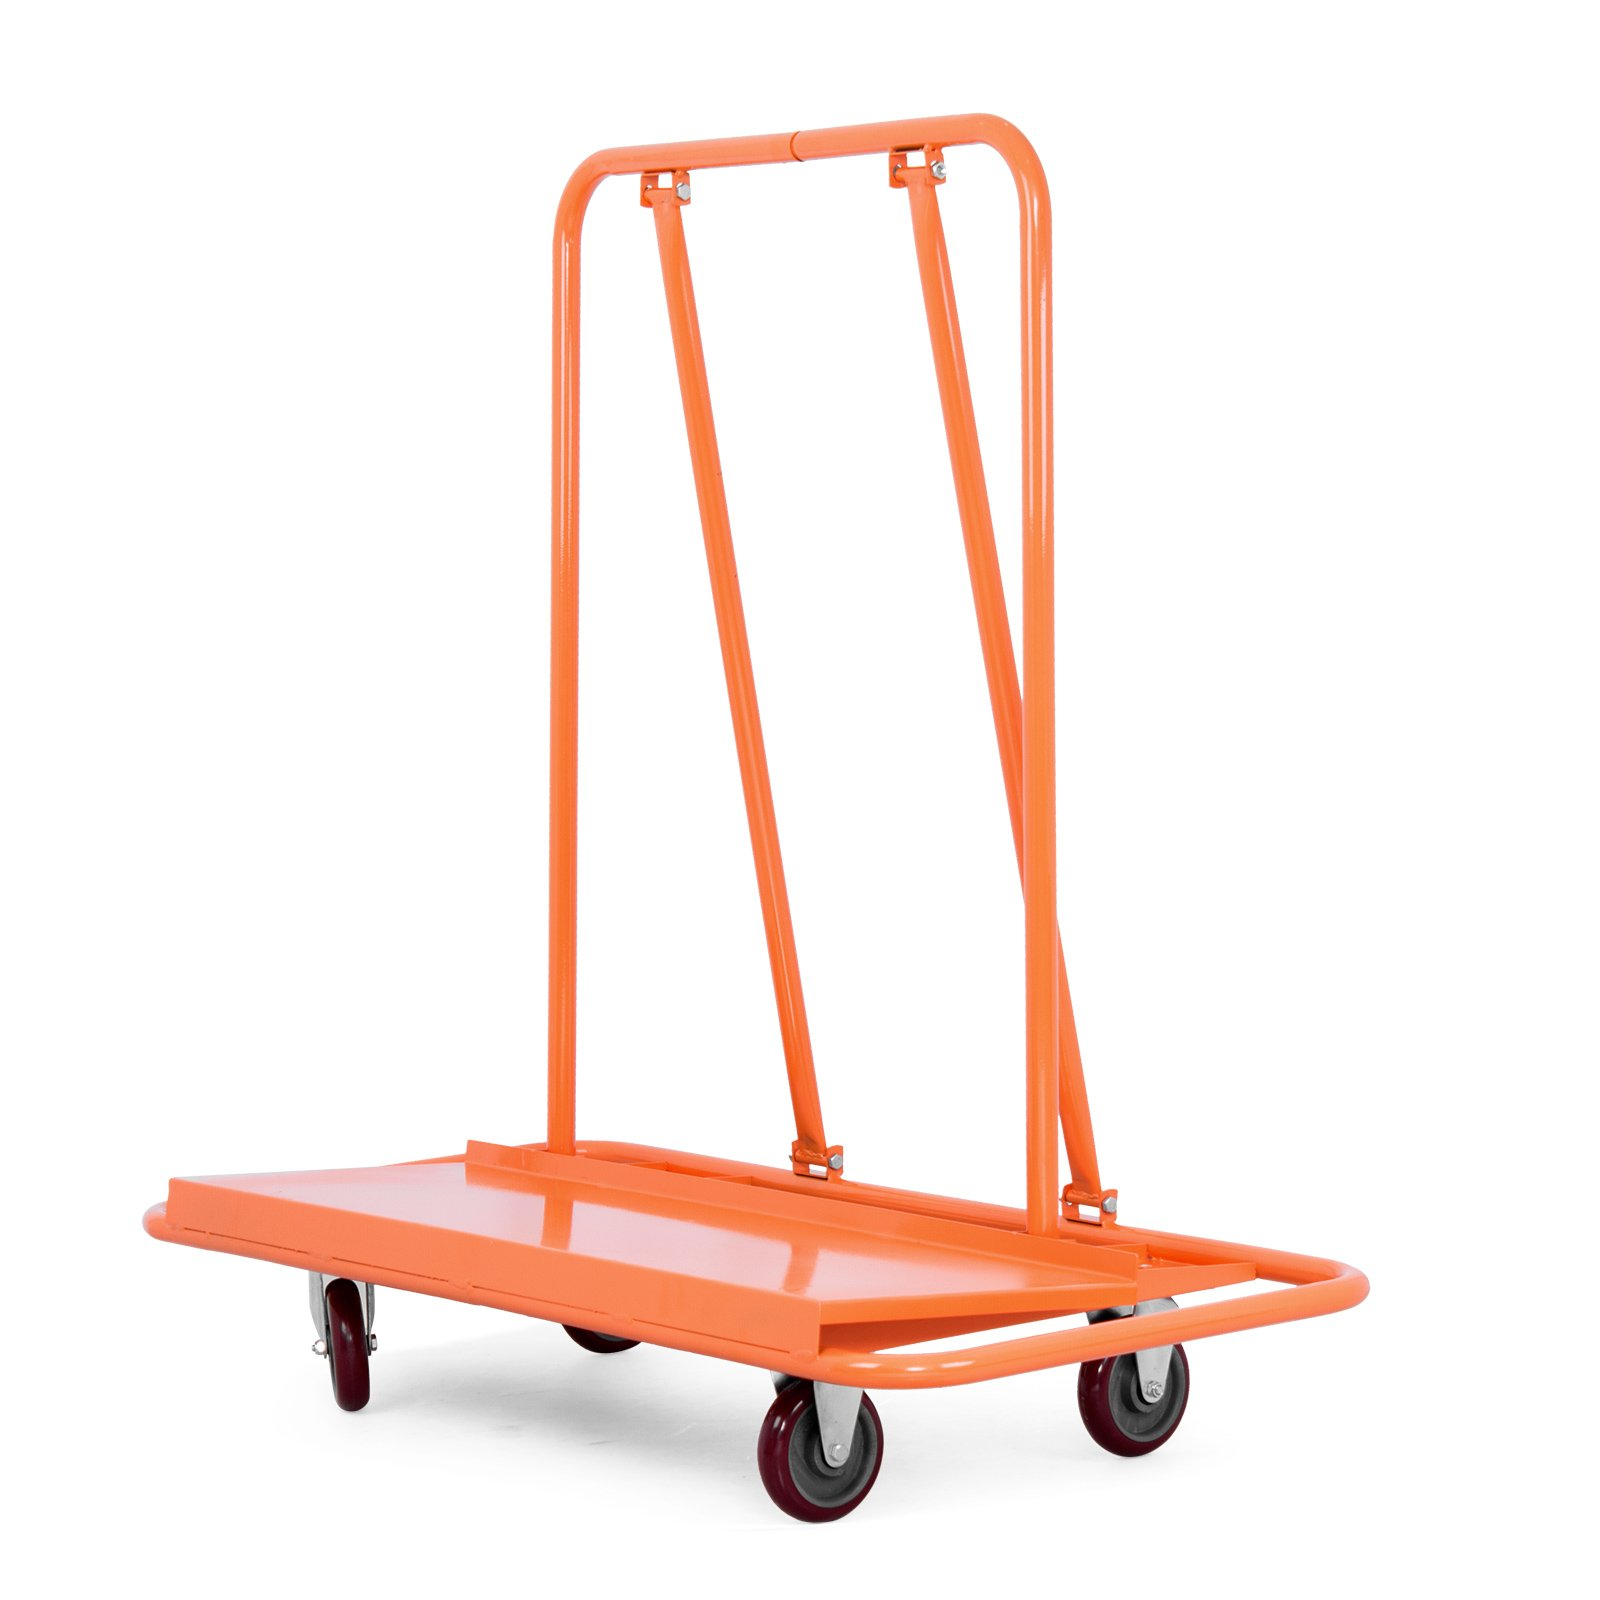 OrangeA Drywall Cart Dolly 2000LB Heavy Duty Sheetrock Panel Cart Professional Drywall Cart with 2 Fixed and 2 Swivel Heavy Duty Casters Plywood Dolly Panel Trolley Truck (2000Lbs Capacity)